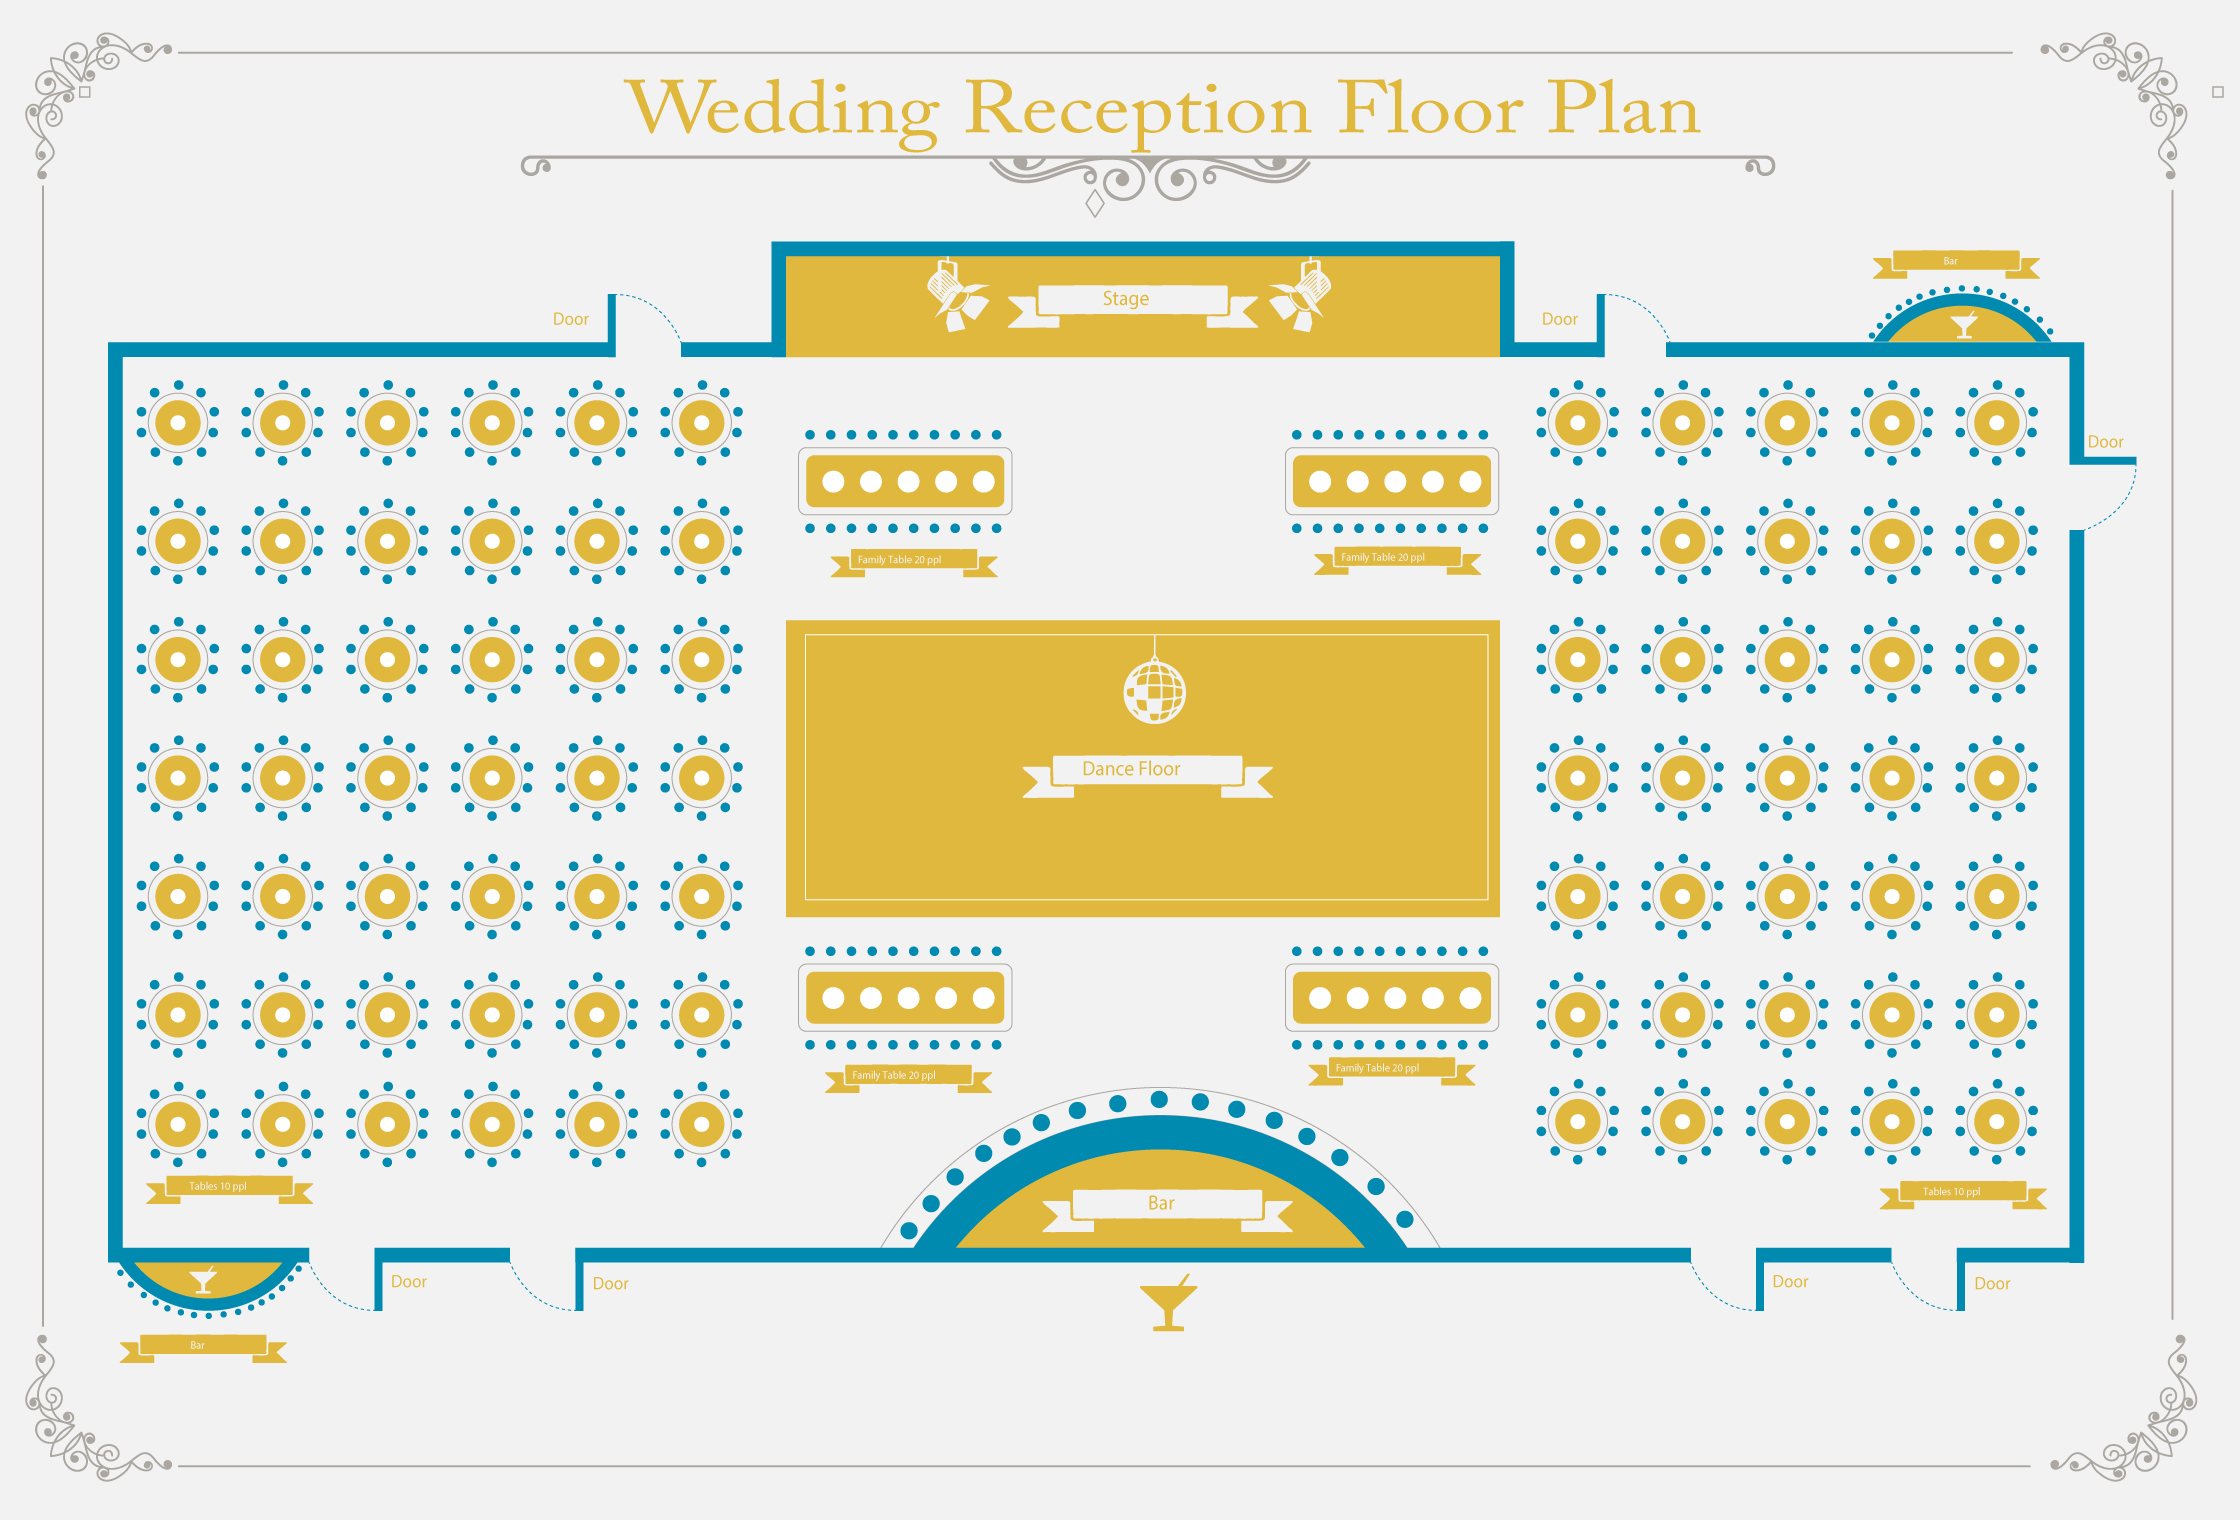 Weeding Reception Floor Plan